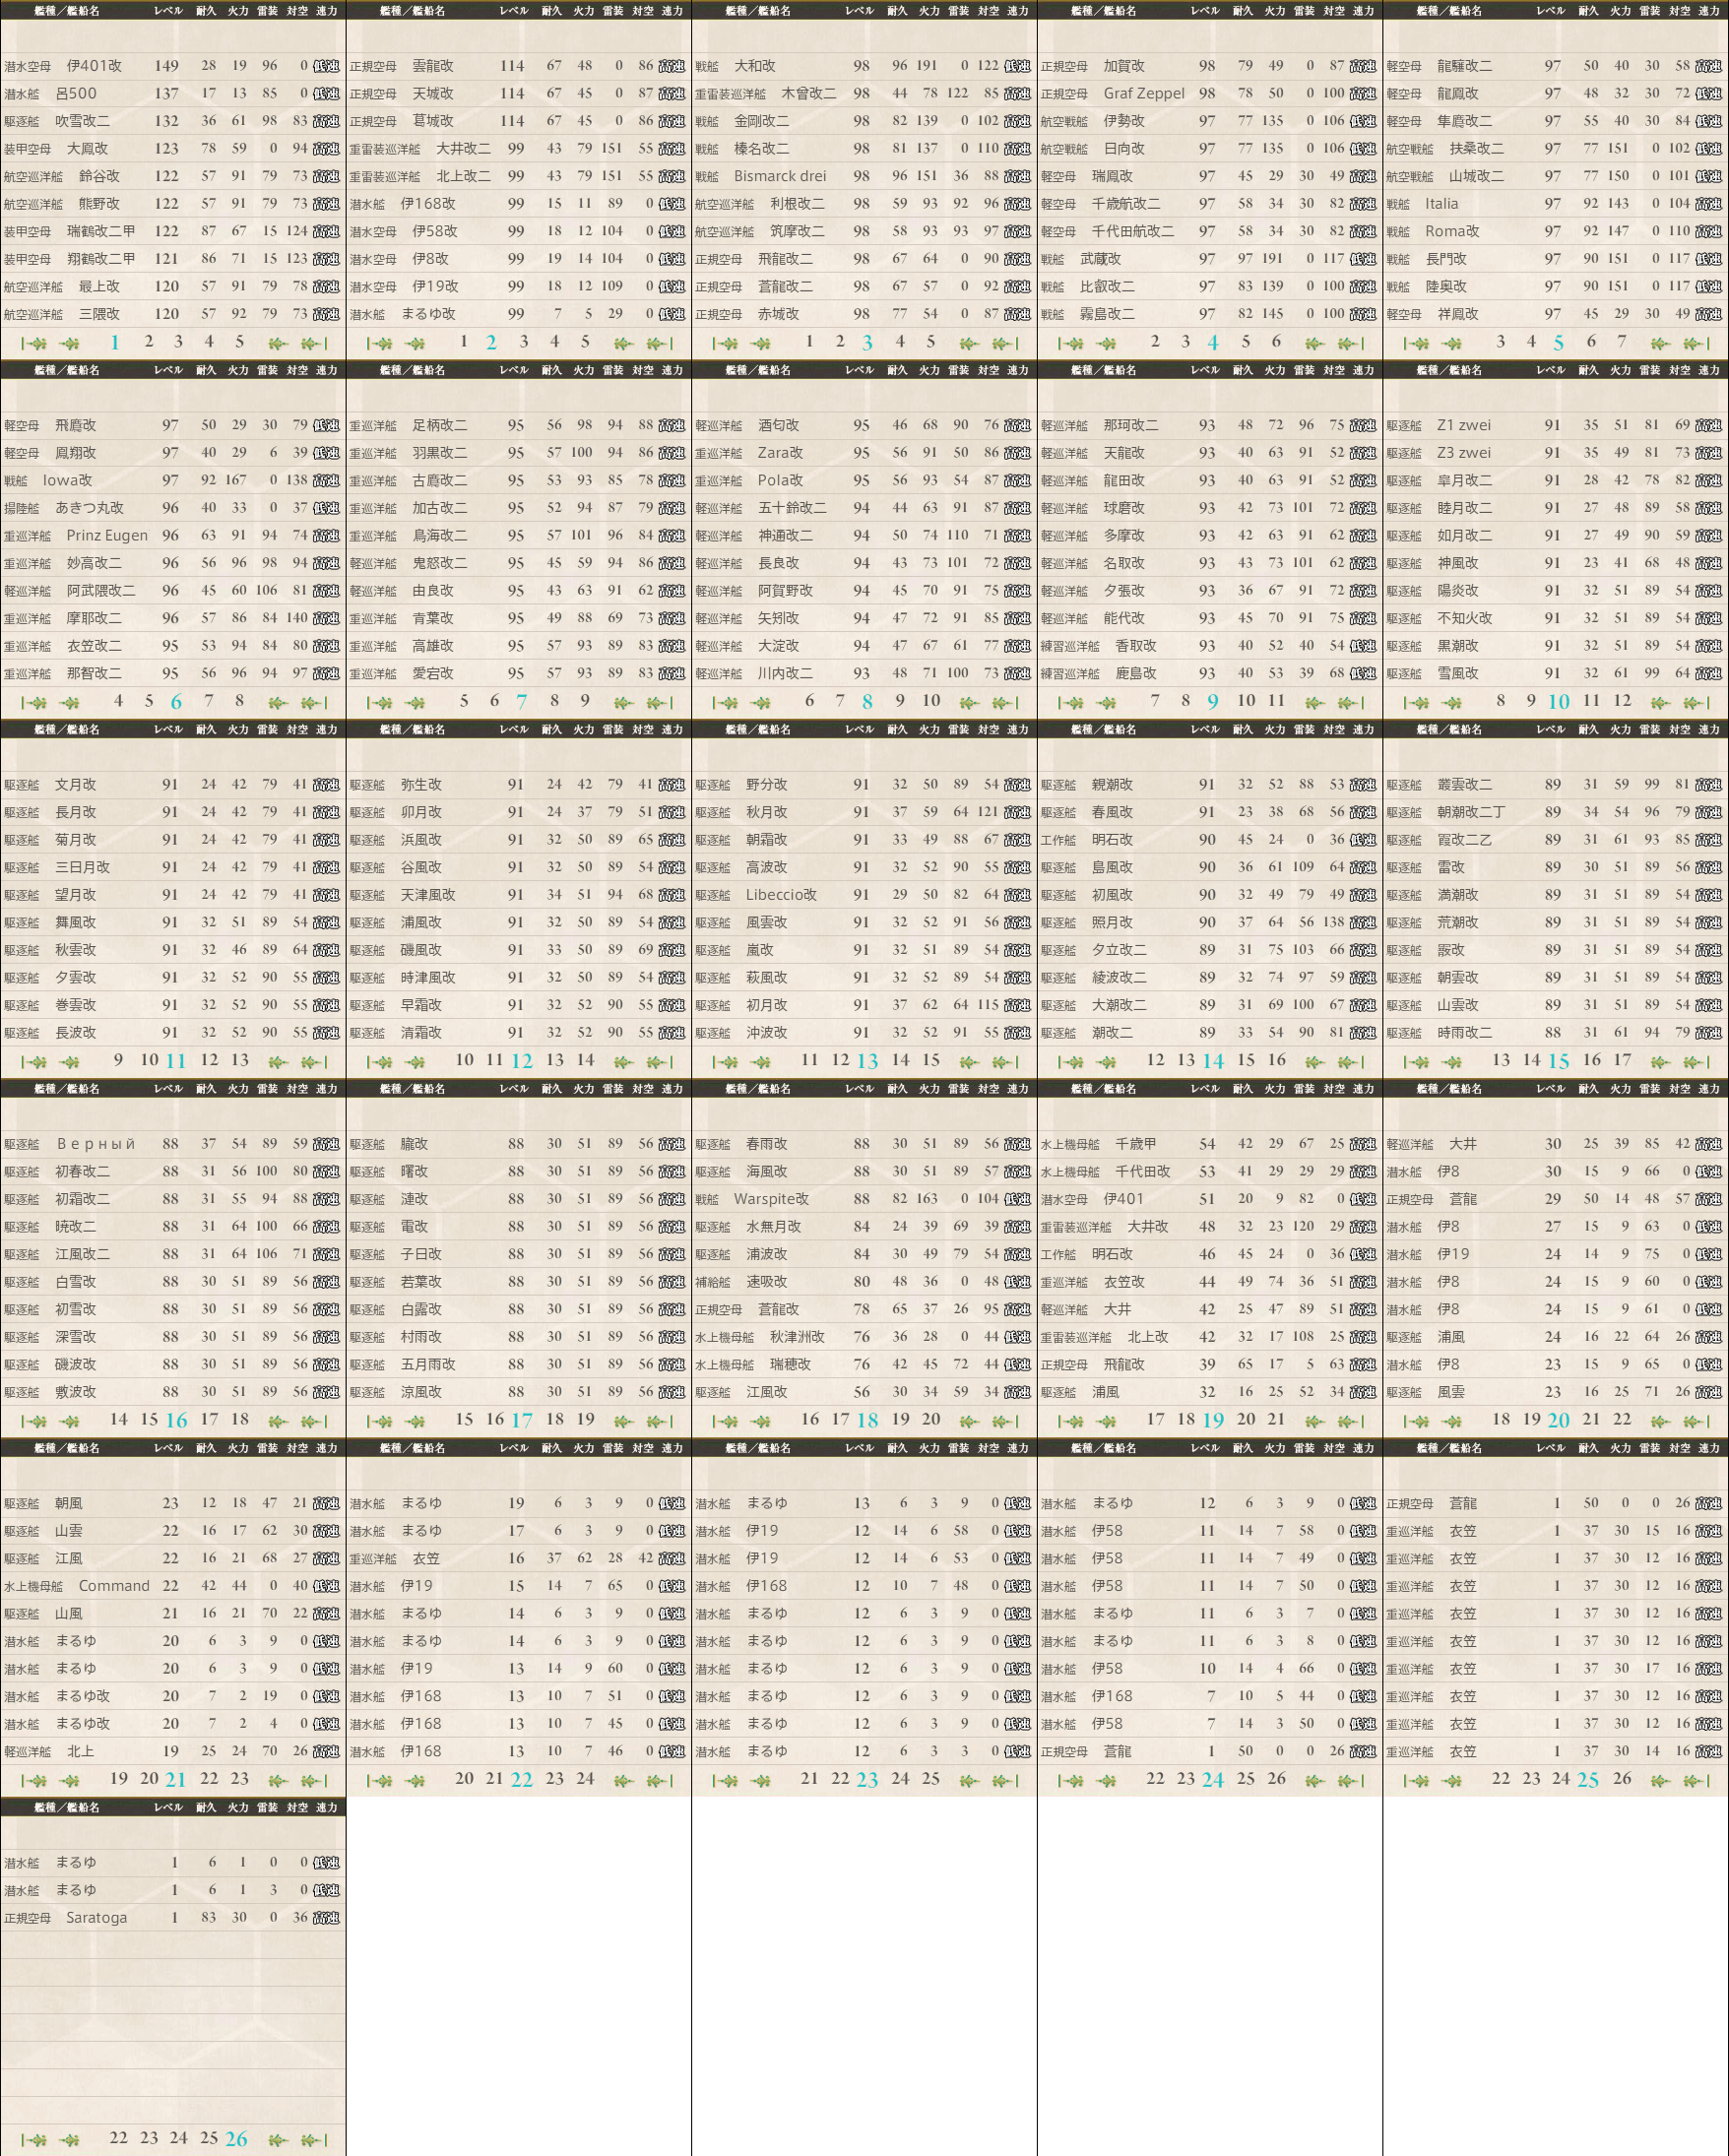 data.kancolle.levelsort.20161204.png